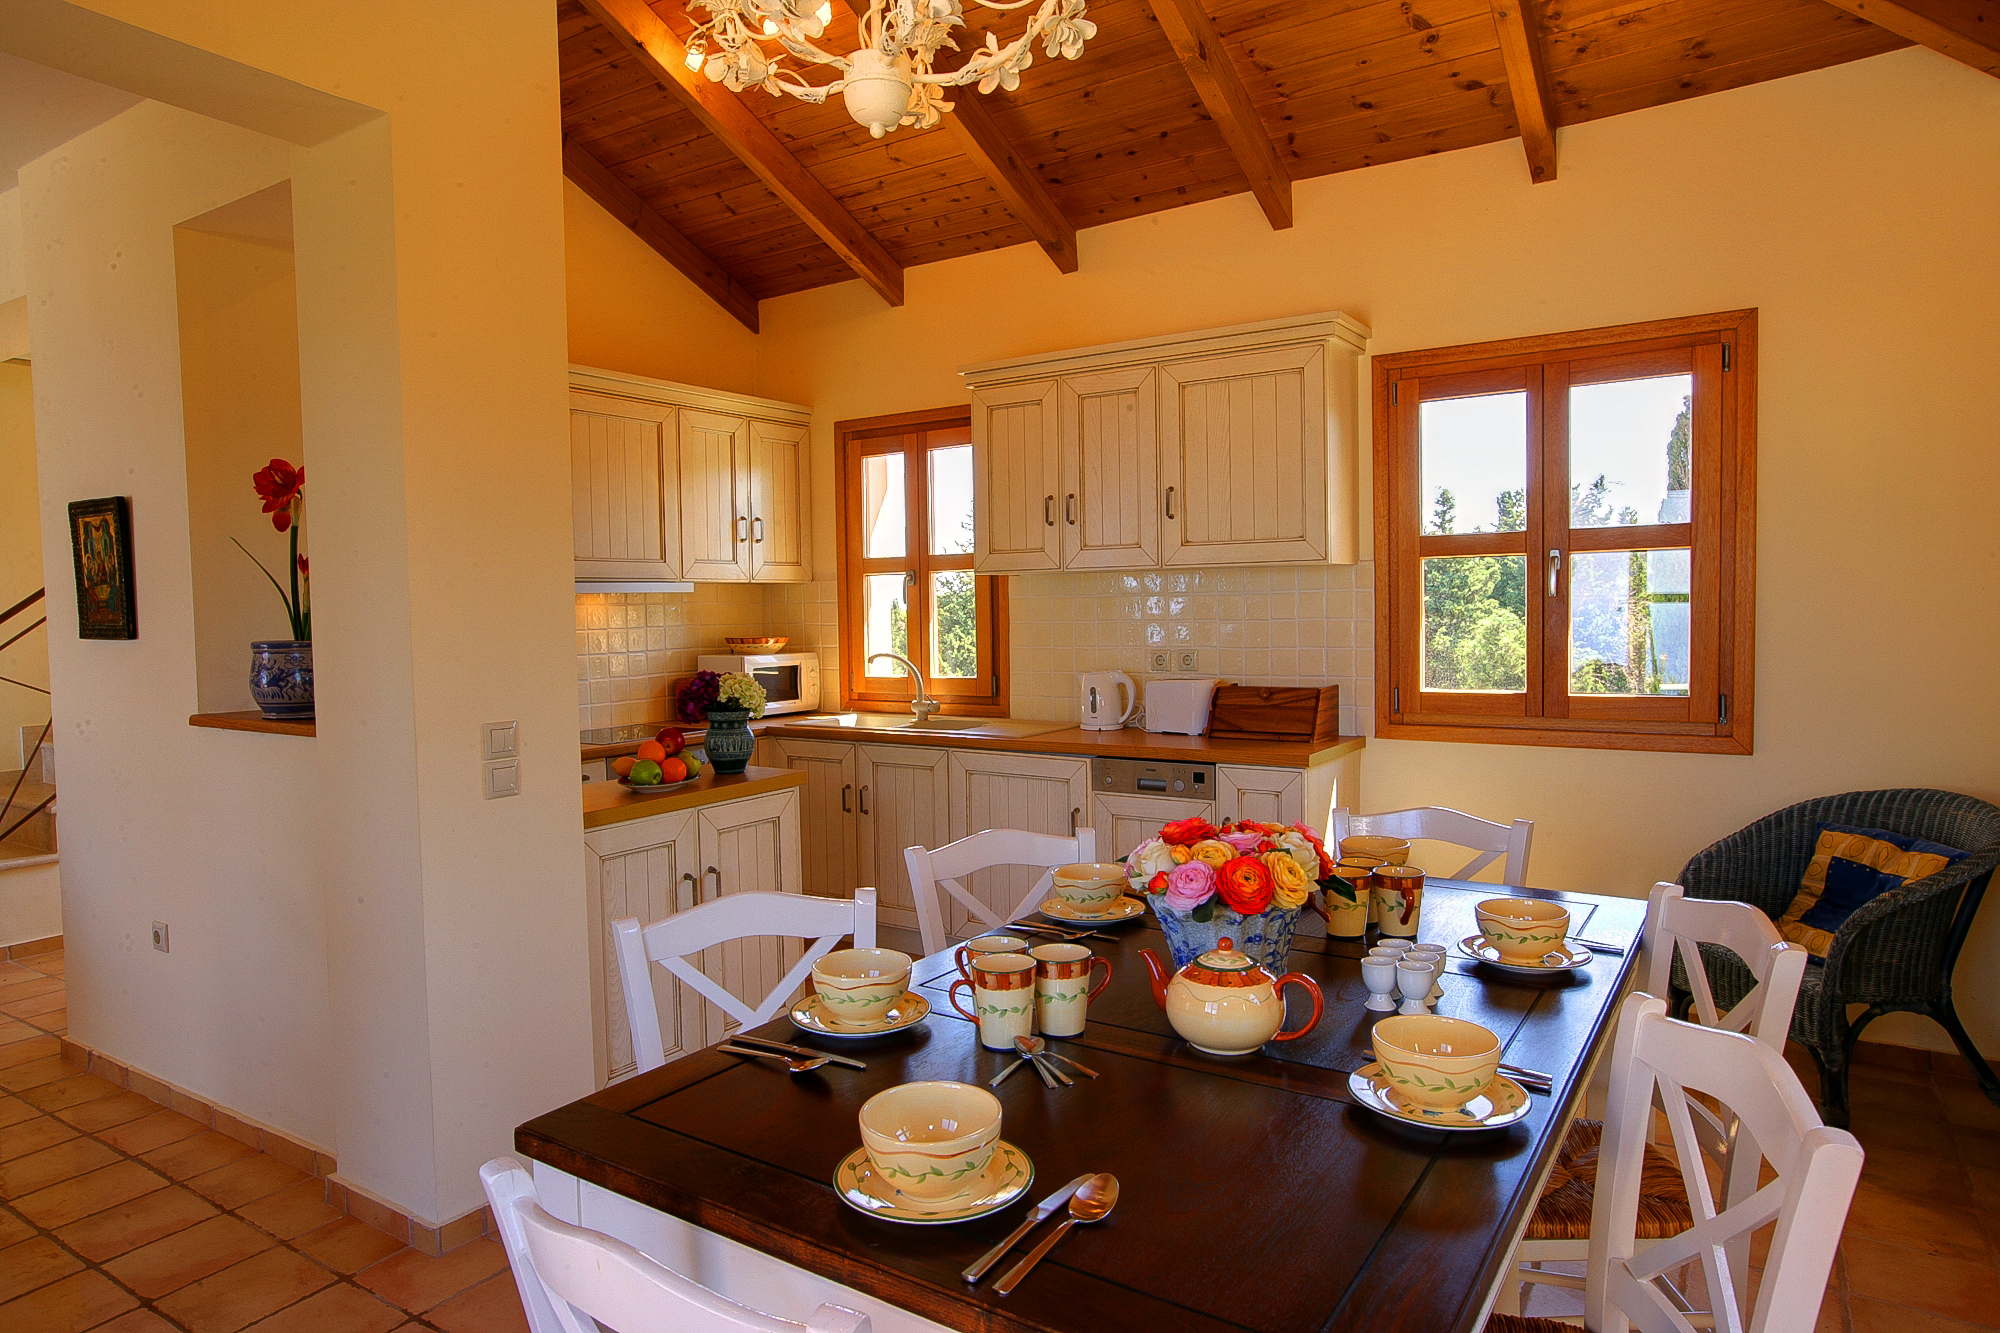 Villa Bernice dining room + kitchen